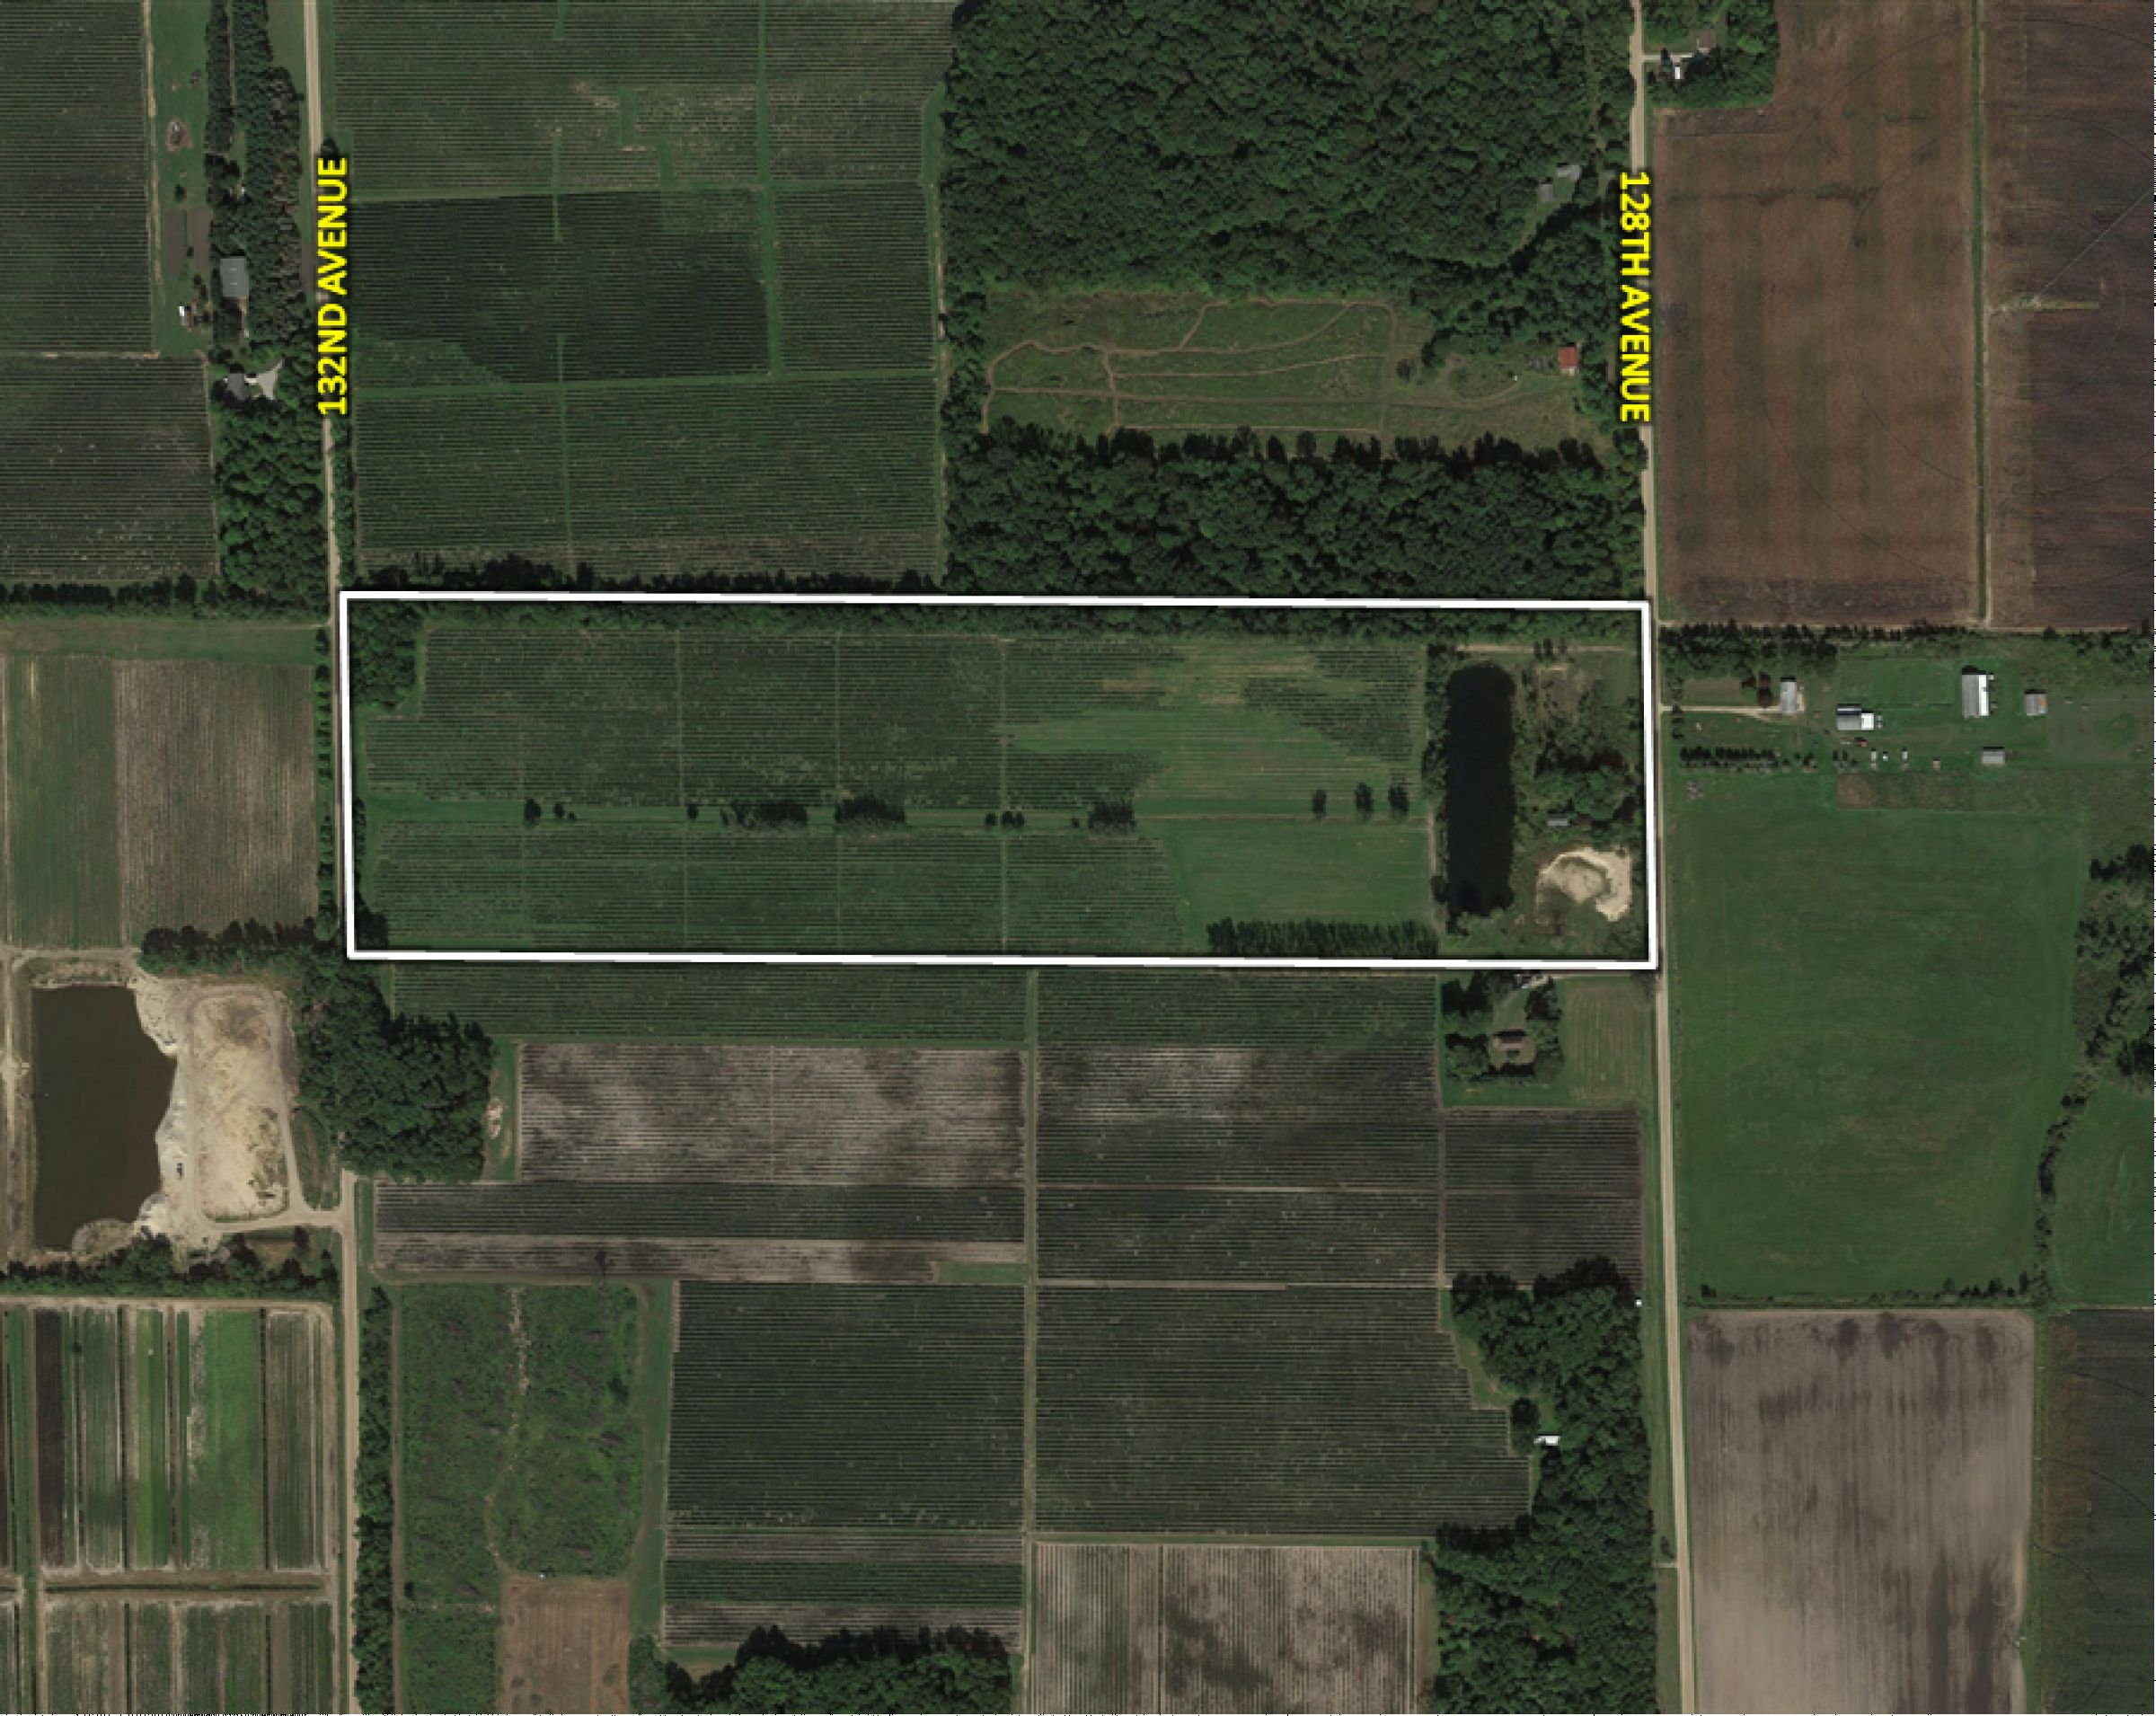 7-132nd-avenue-farm-holland-49422-0-2020-12-22-230712.png